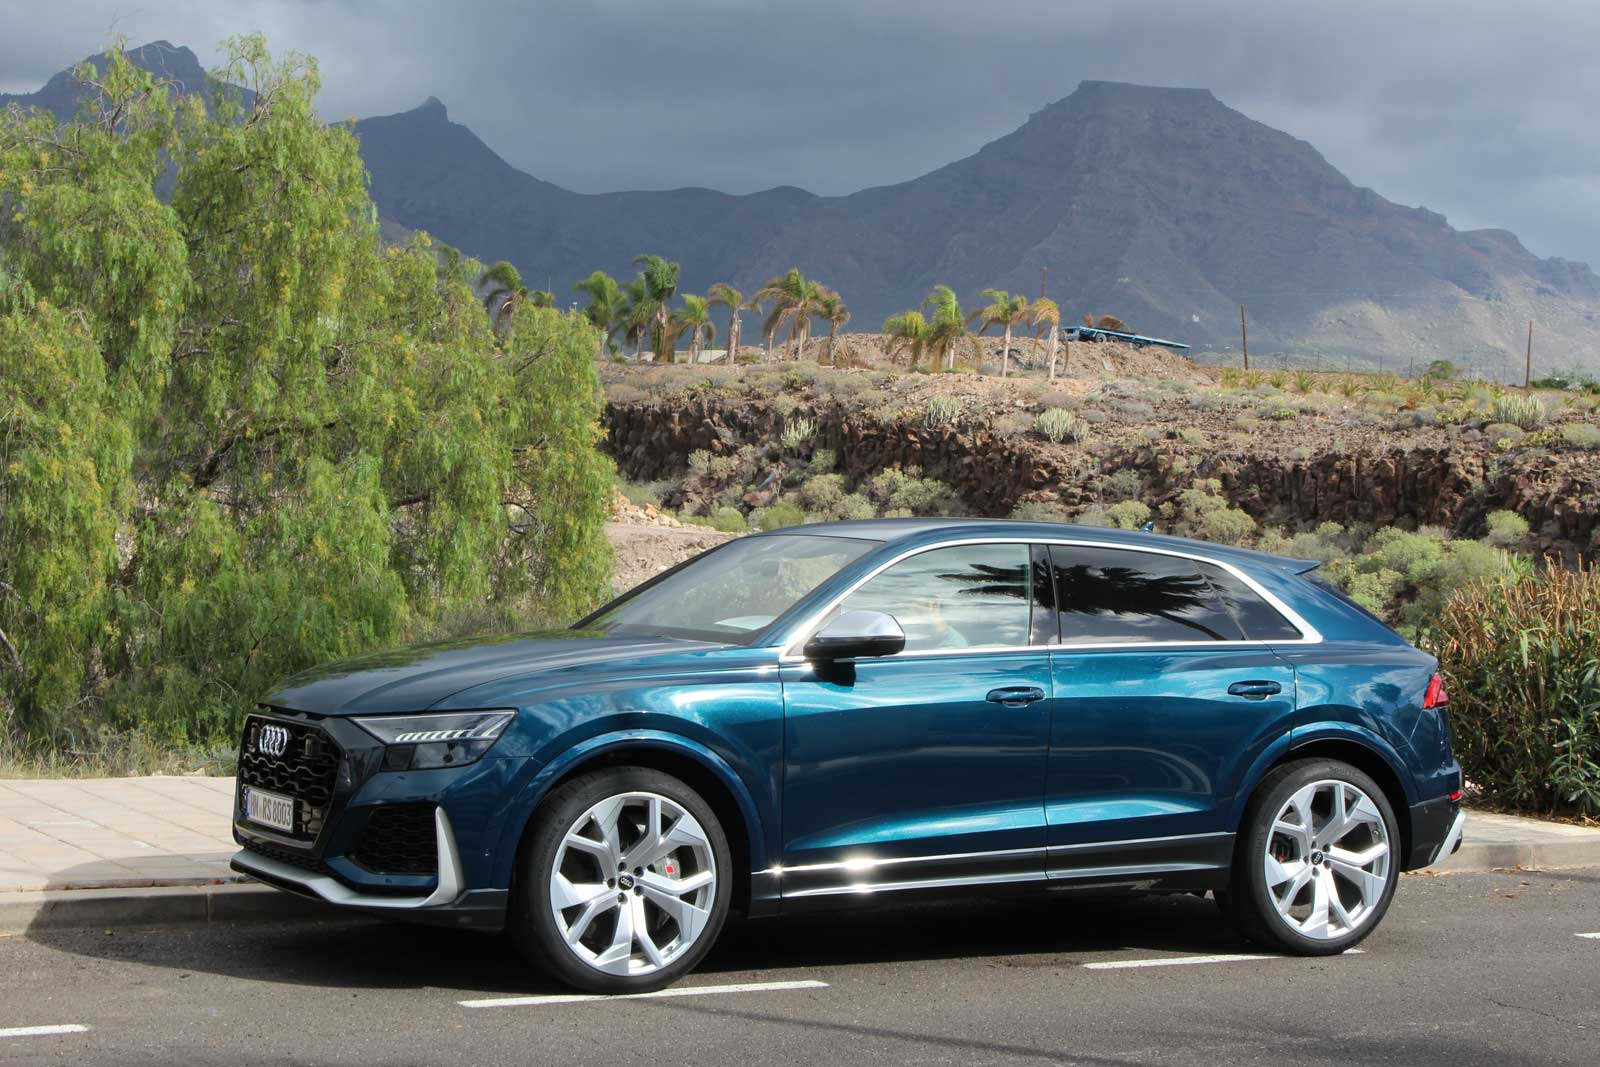 2021 Audi RS Q8: All Performance, No Bull - Motor Illustrated